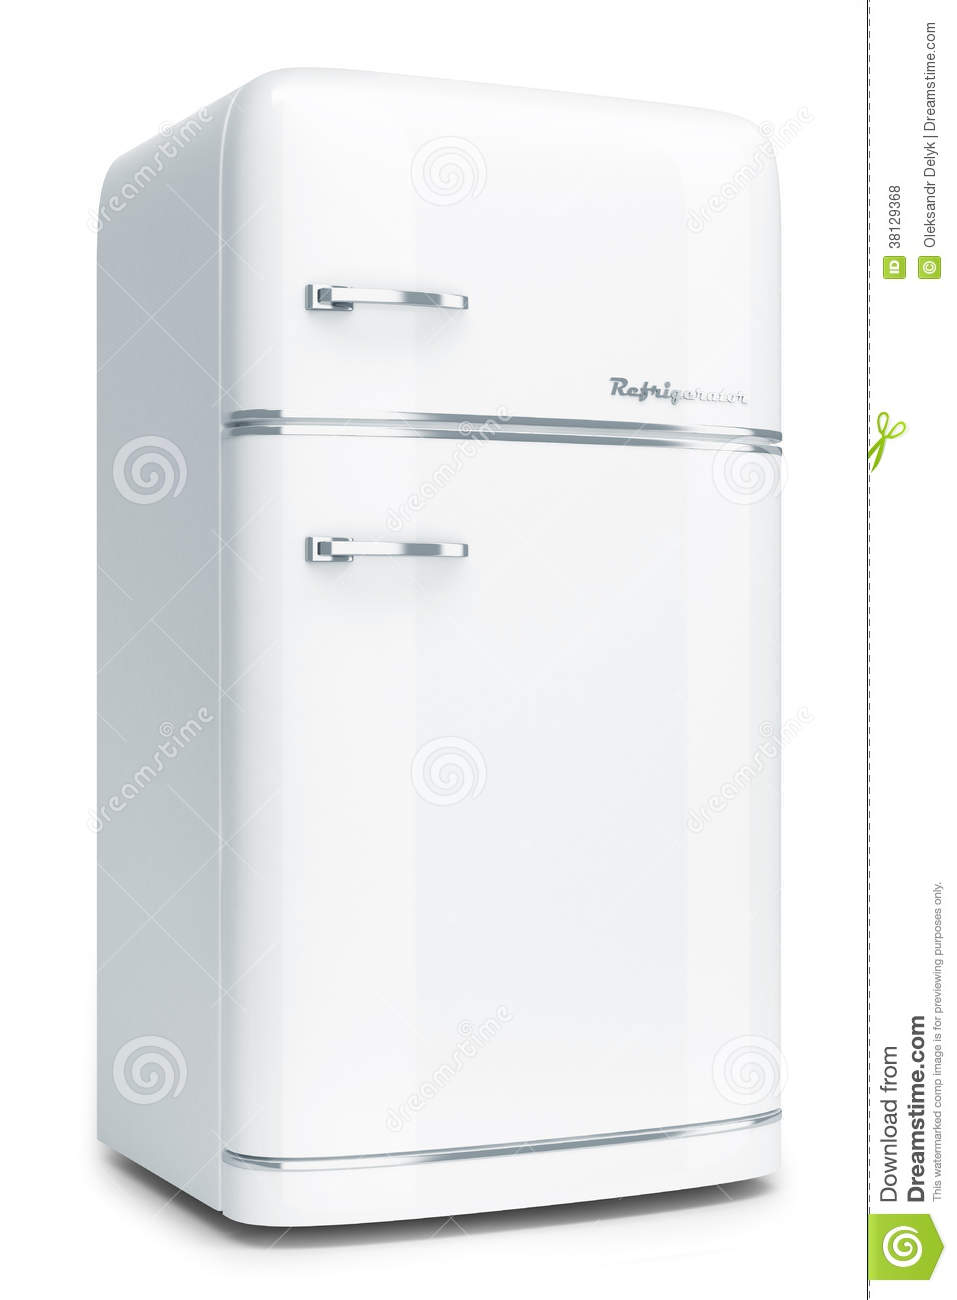 White Retro Refrigerator Royalty Free Stock Photos - Image: 38129368 | {Kühlschrank retro 24}